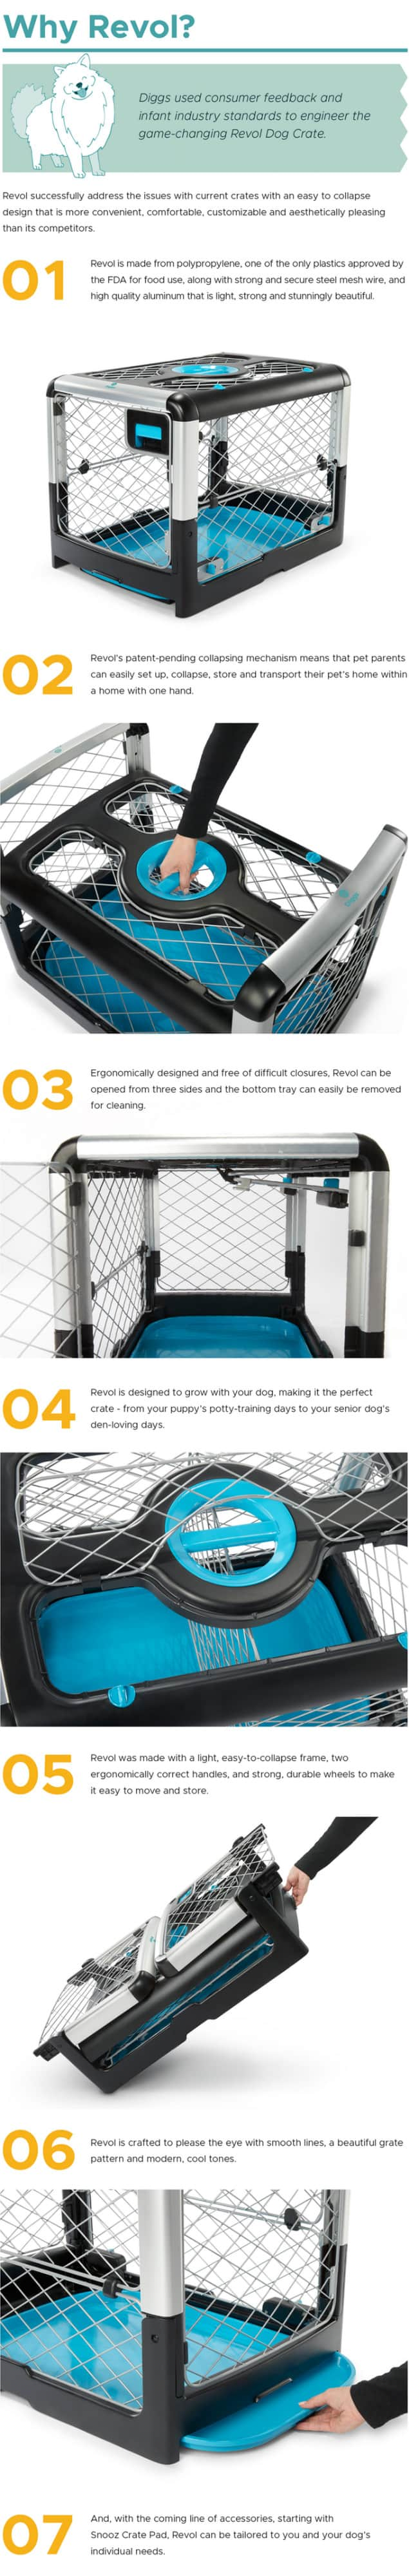 Diggs Revol Dog Crate + Snooz Pad: A Dog Crate Revolution